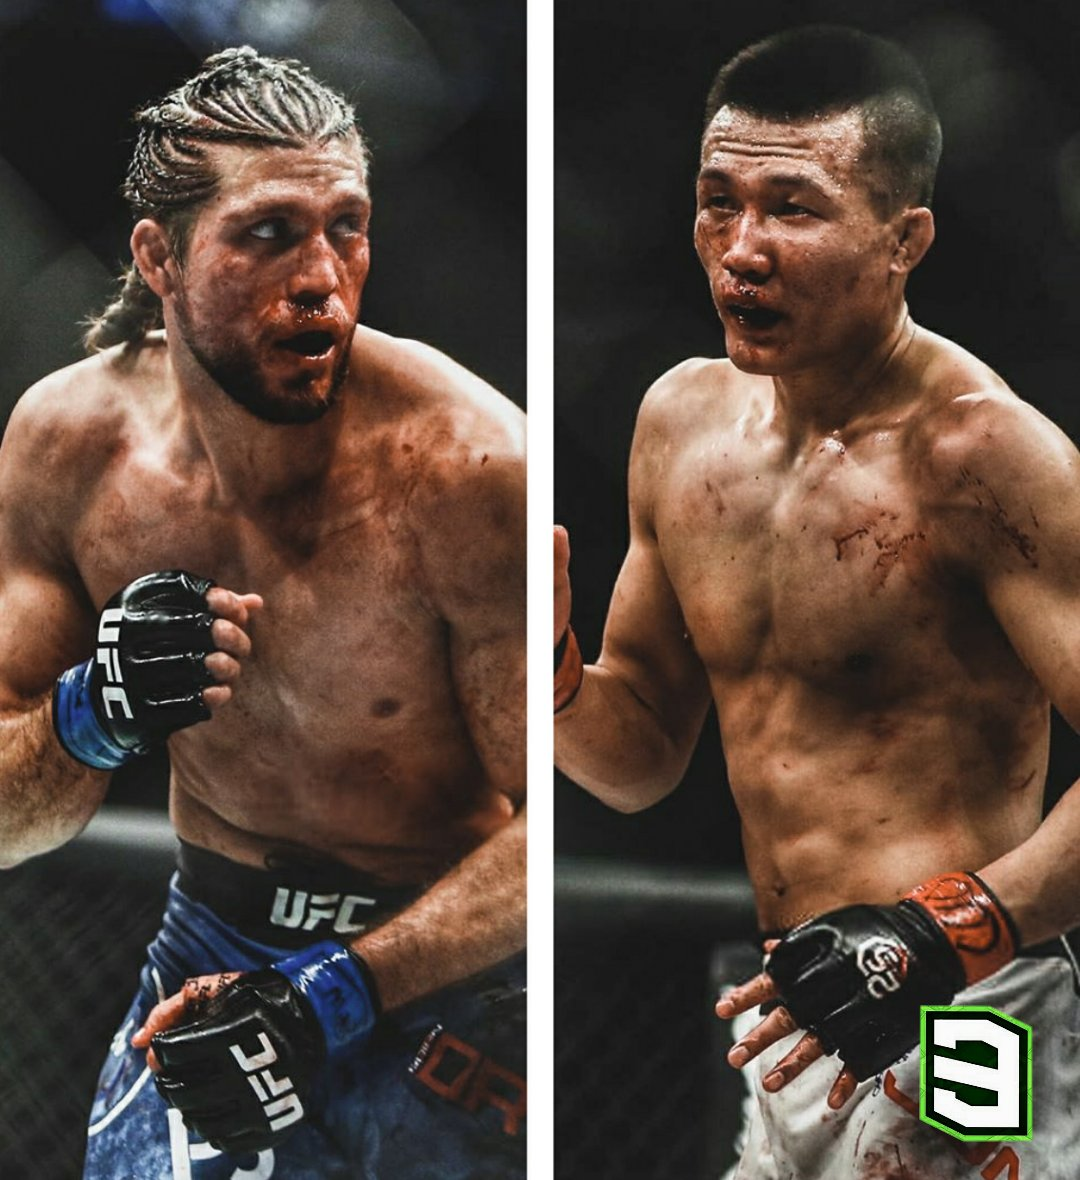 Brian Ortega vs Korean Zombie is in the works for September 21 in Mexico City. #UFCMexicoCity  #MMA #UFC #MartialArts #UFConESPN #combatsports